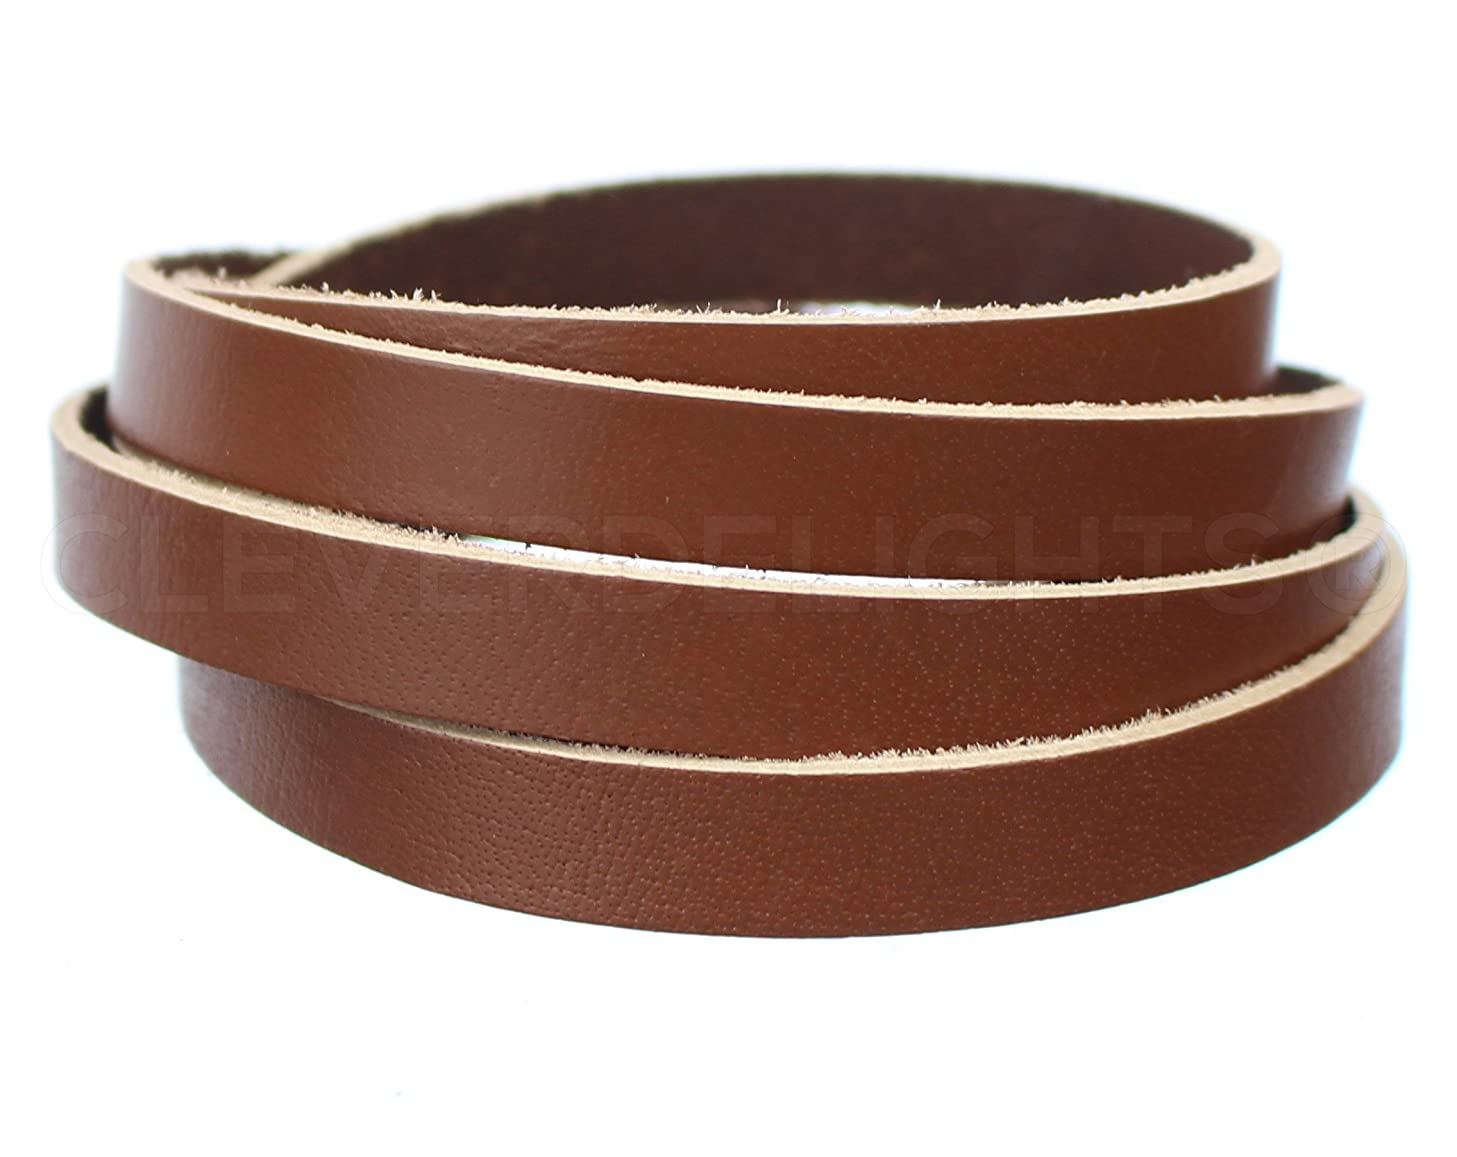 CleverDelights Premium Cowhide Leather Strap - 1/2